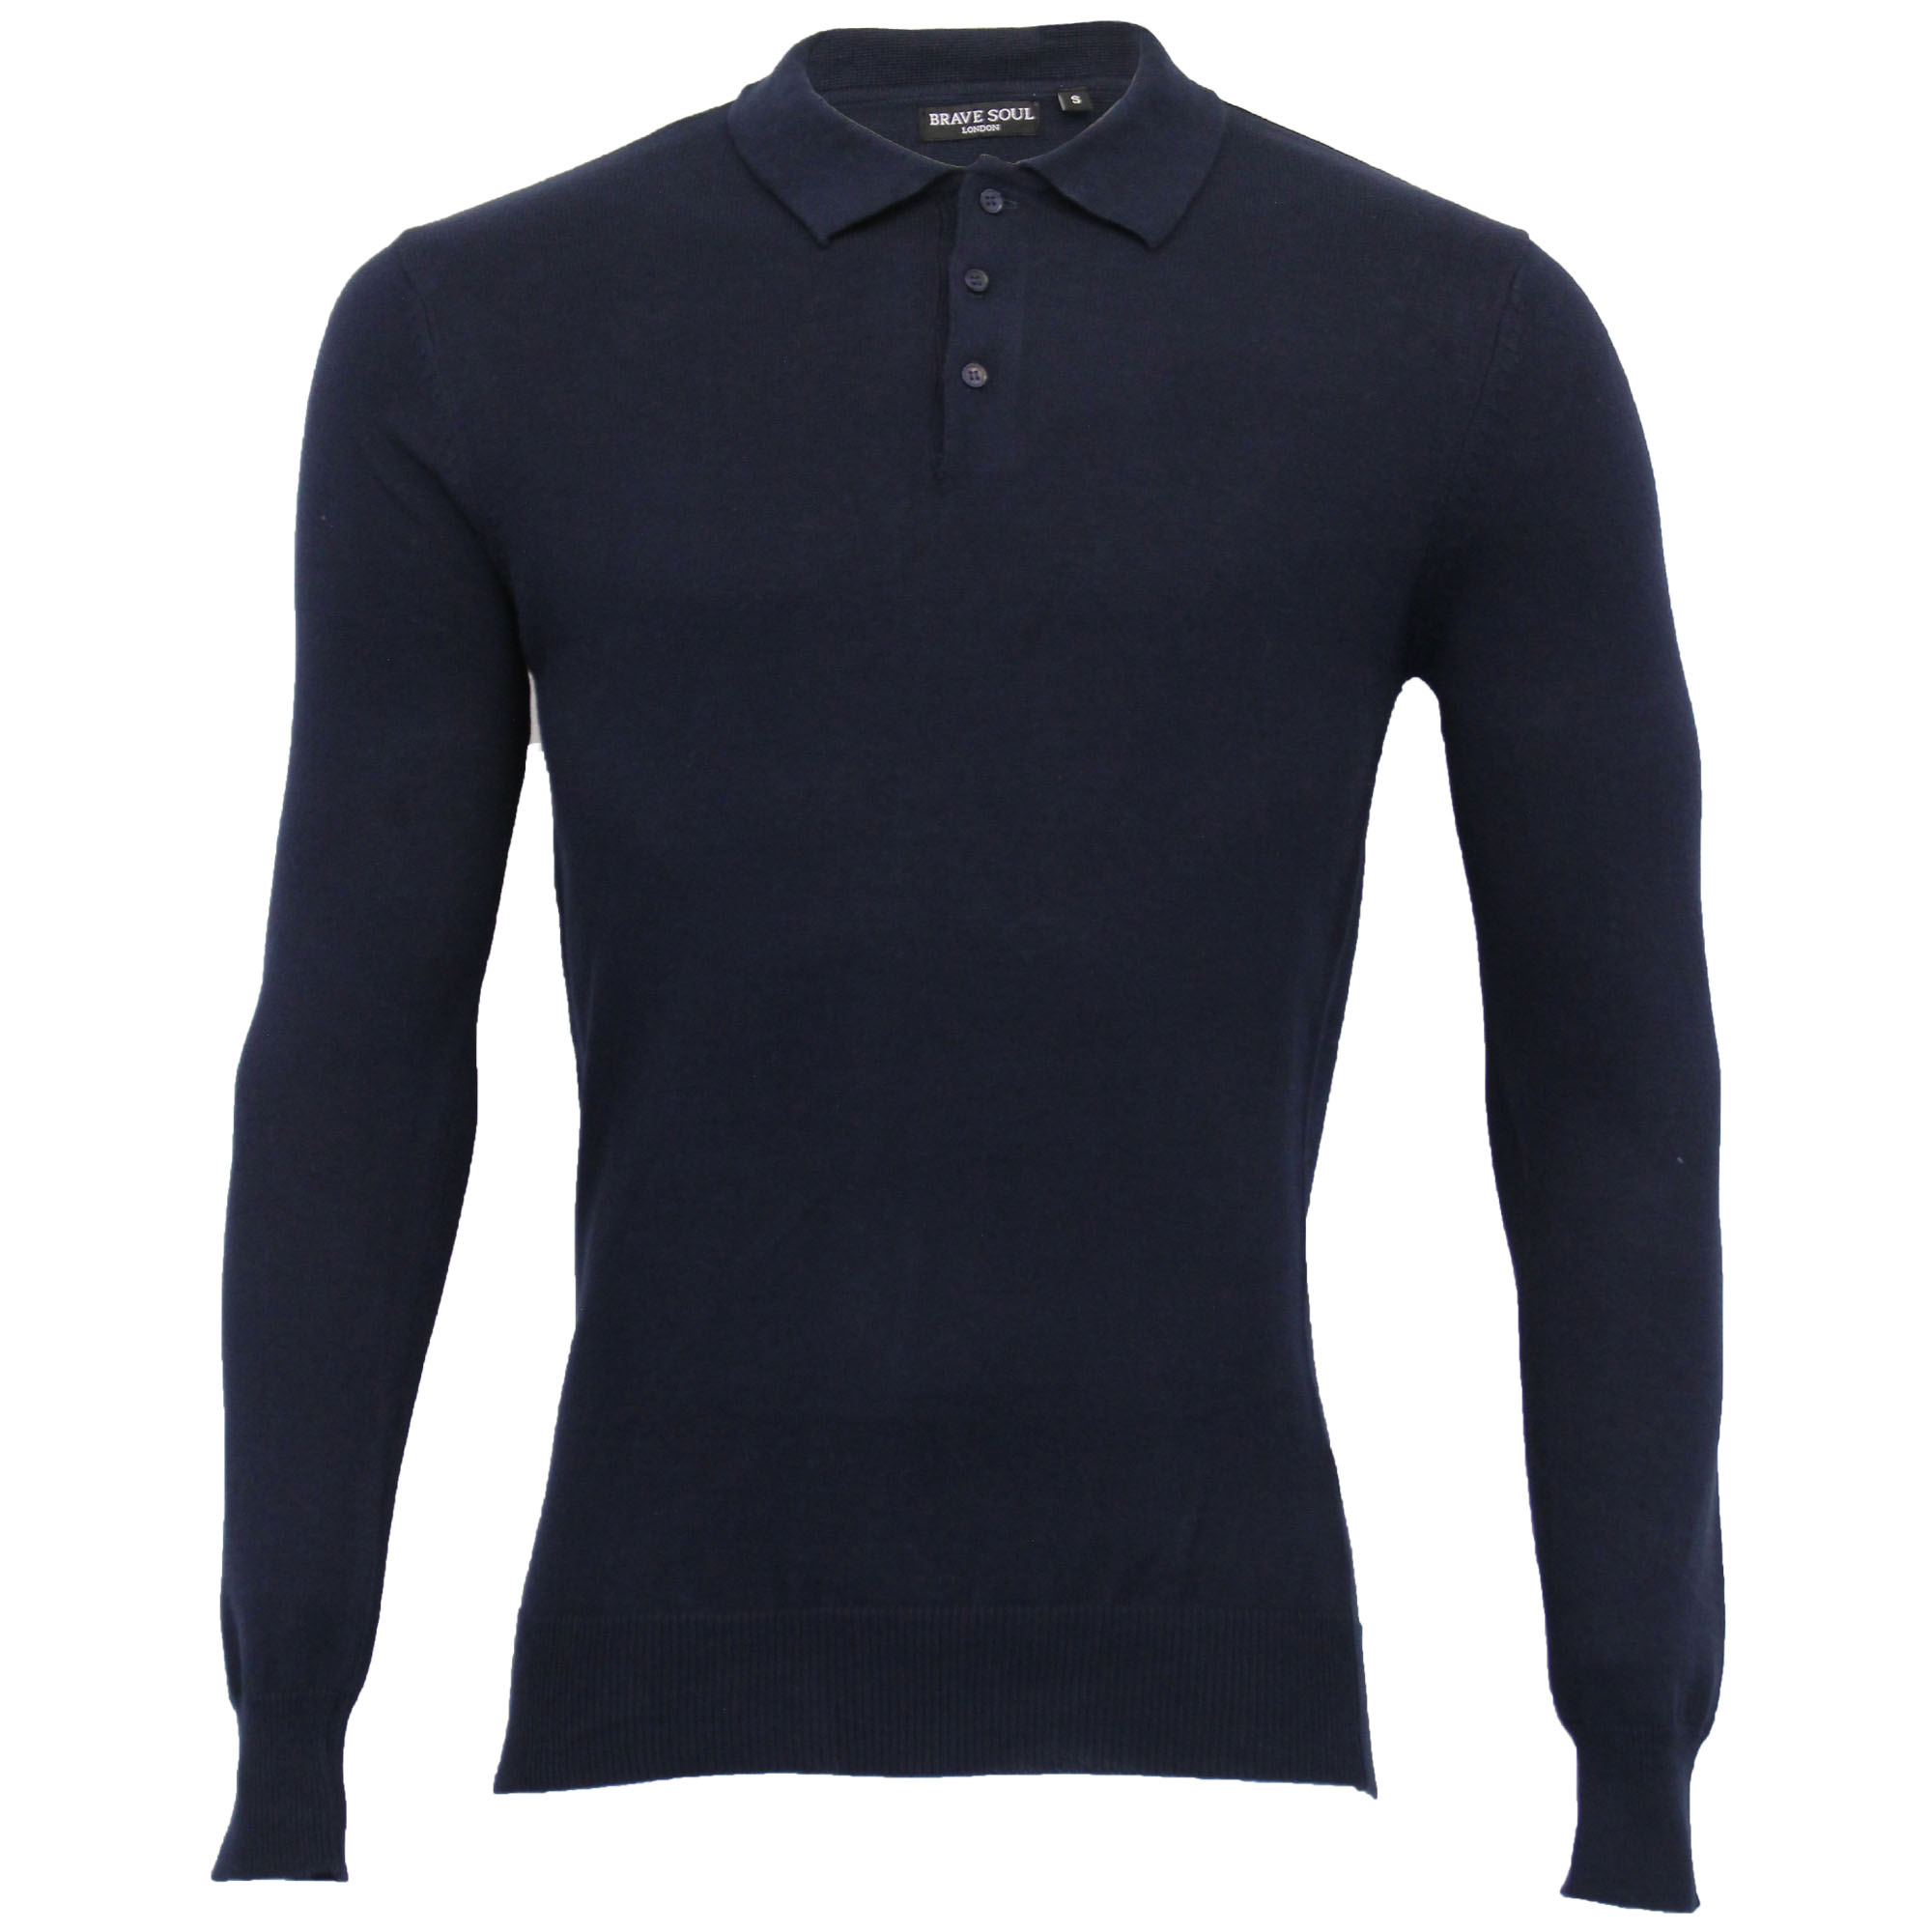 Mens-Knitted-Jumper-Brave-Soul-Polo-Top-Sweater-PLACKET-Pullover-Lightweight-New thumbnail 19